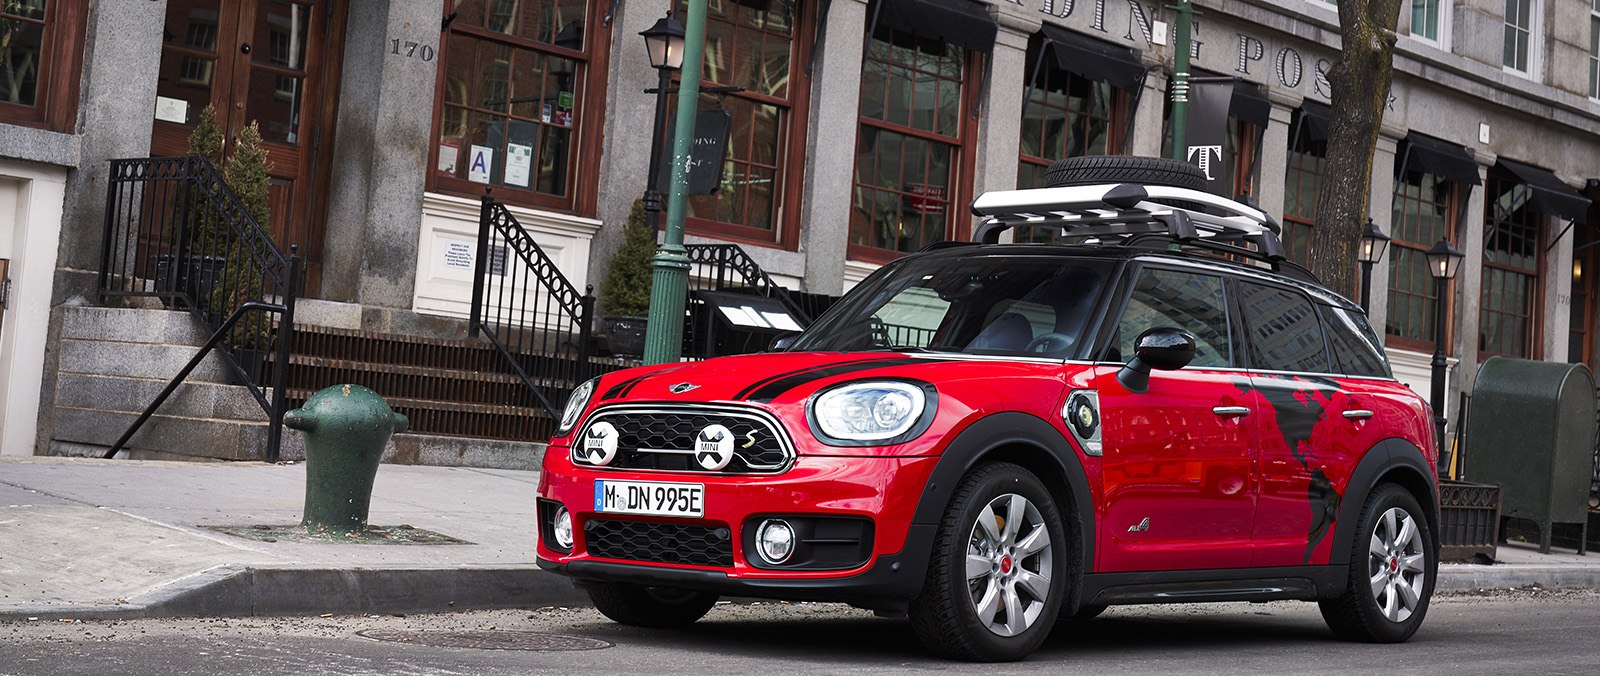 Mini Countryman Panamericana plug-in hybride